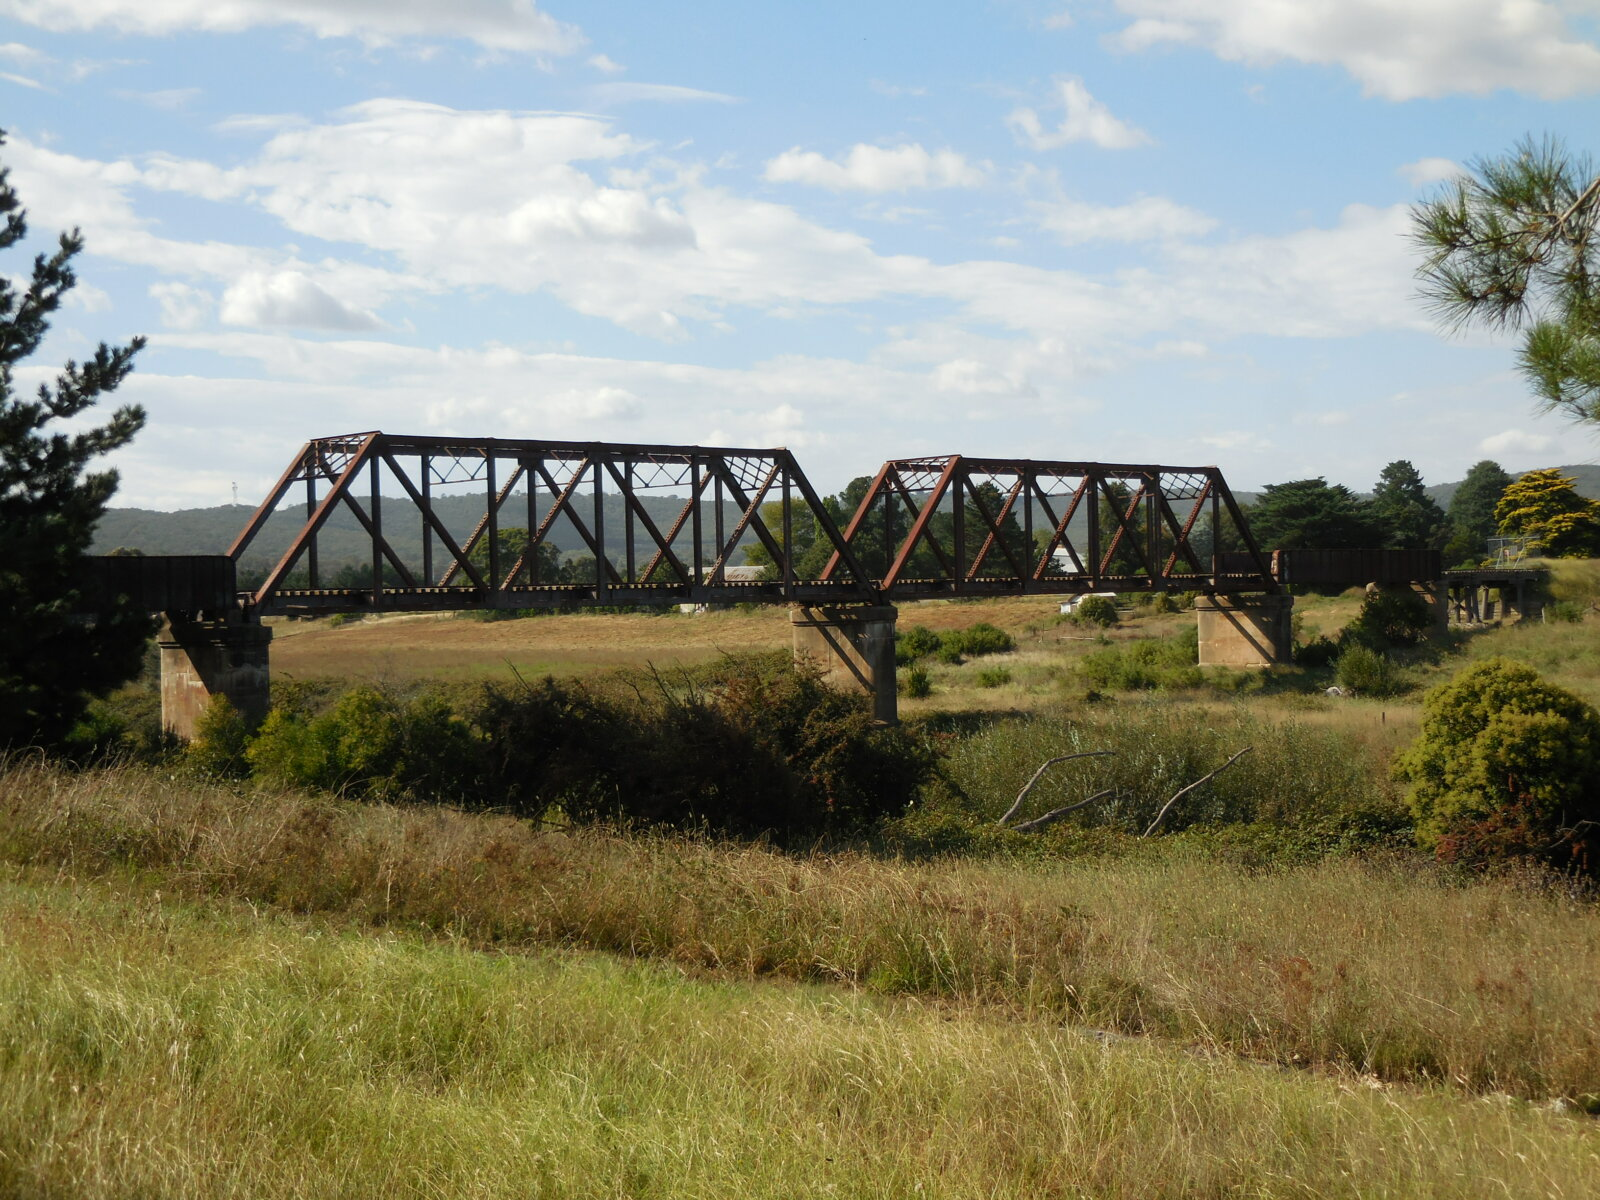 Steel bridge across the Wollondilly River at Kenmore near Goulburn